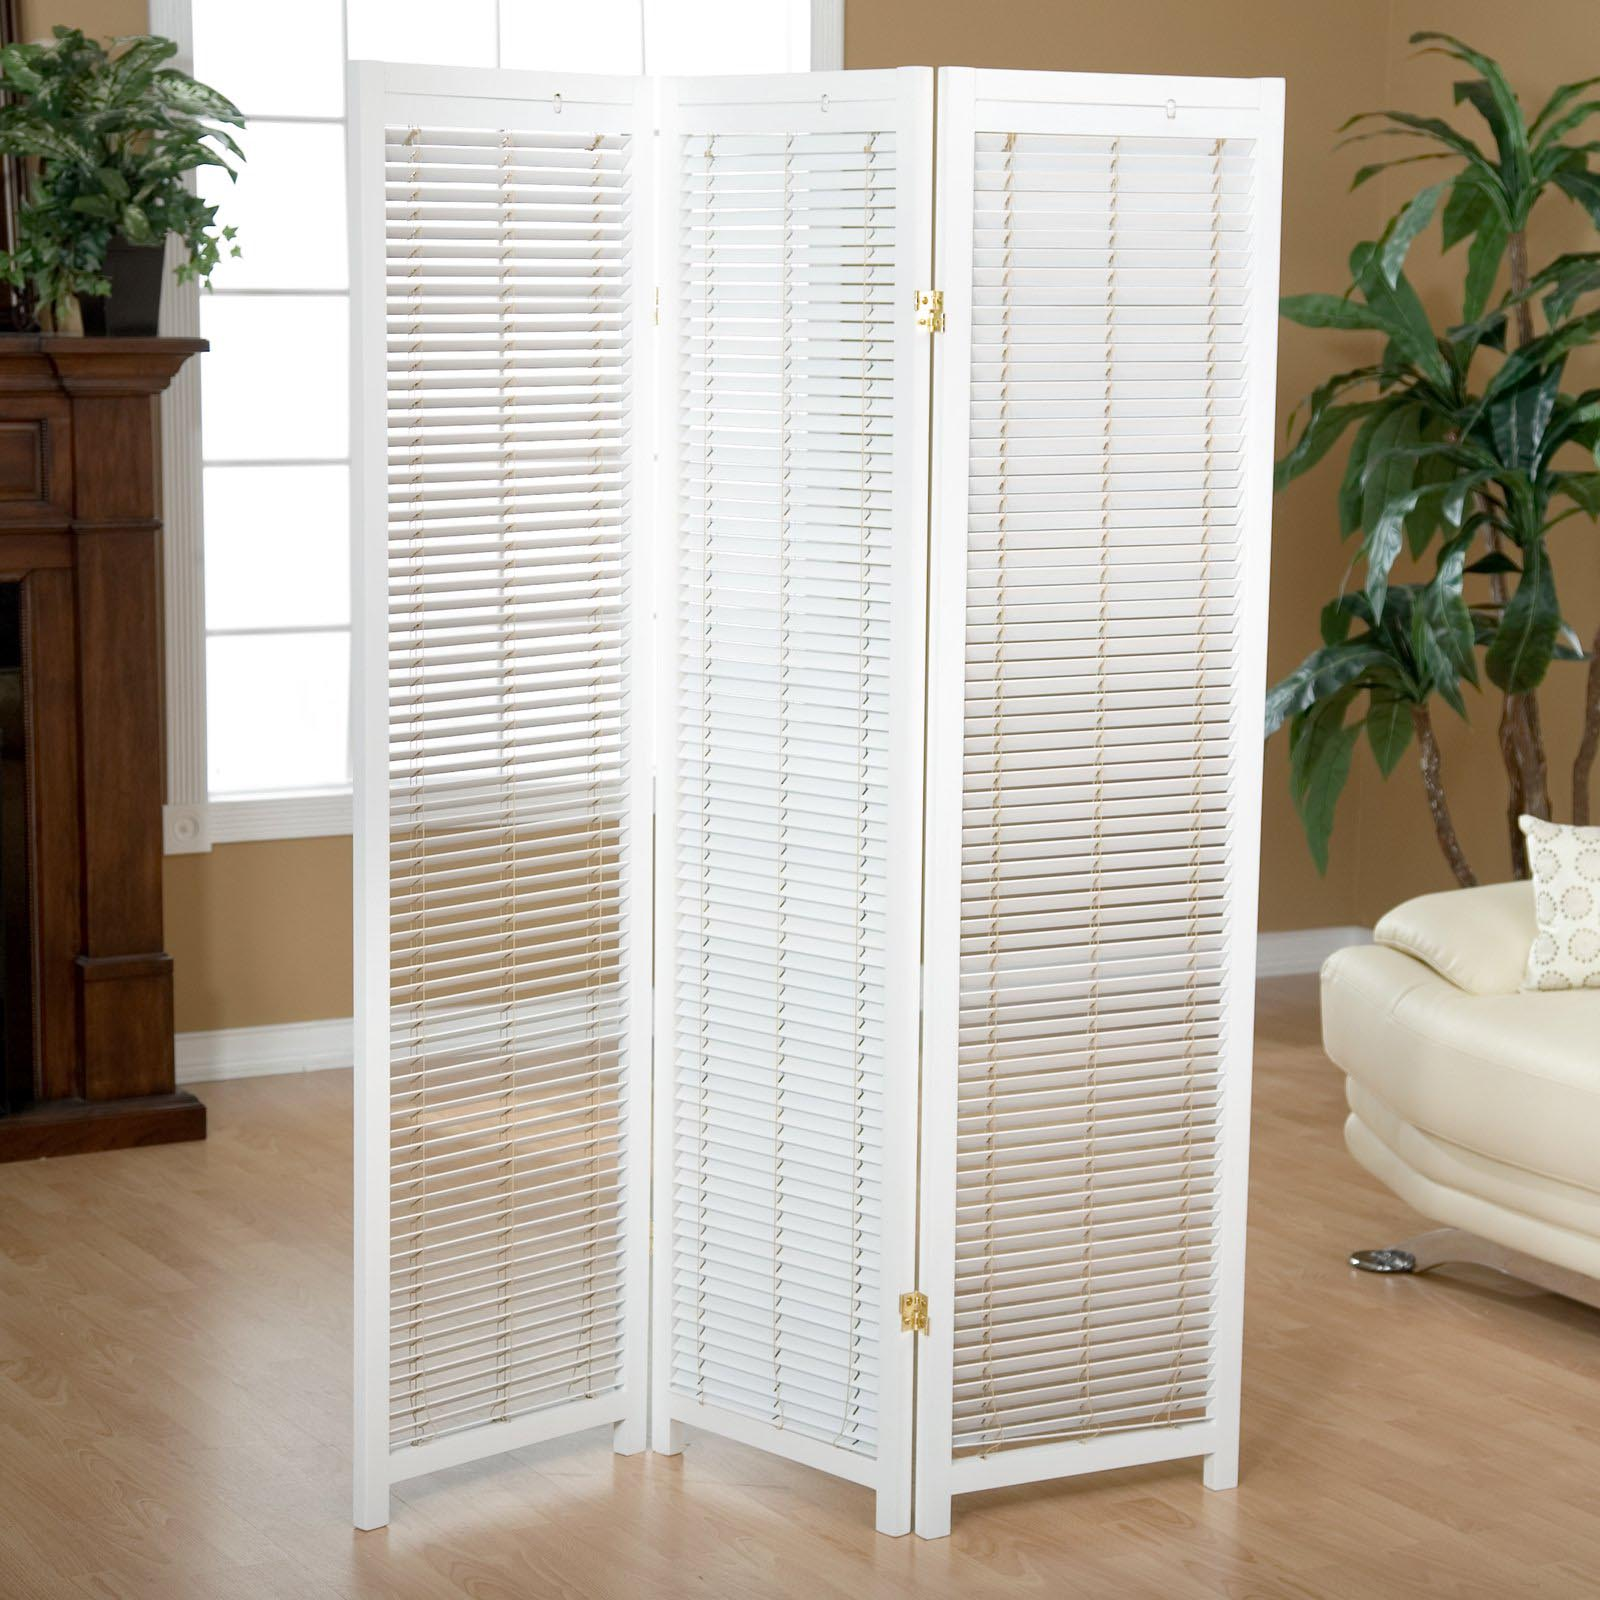 Goedkope Roomdivider Ikea Room Dividers All Over The World Best Decor Things